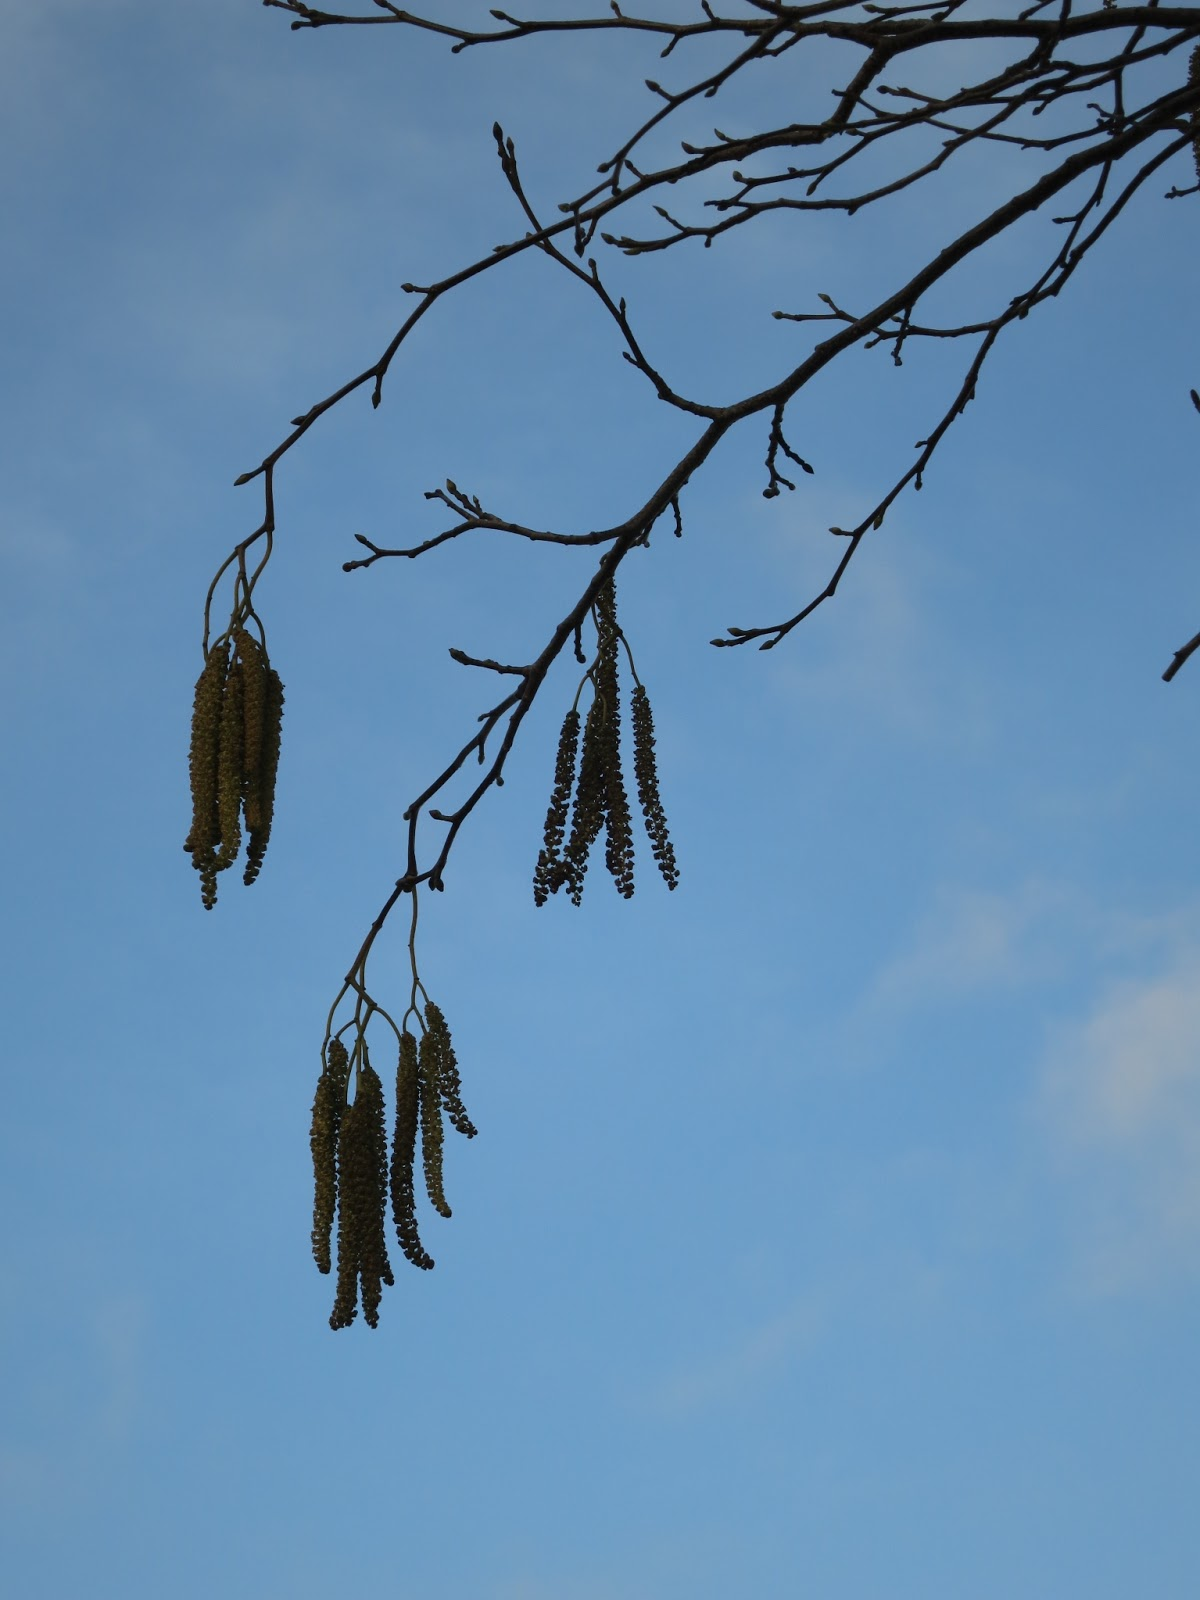 Groups of catkins hanging from bare branches against a blue sky.